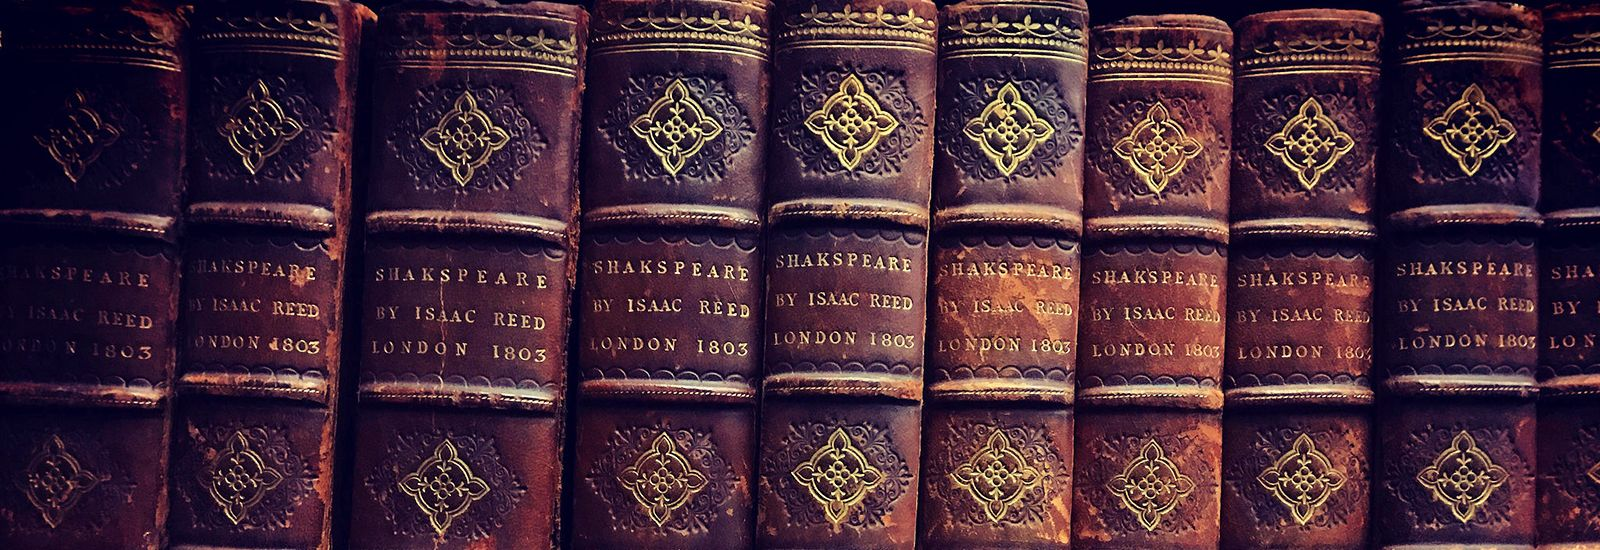 Spines of old books on Shakespeare